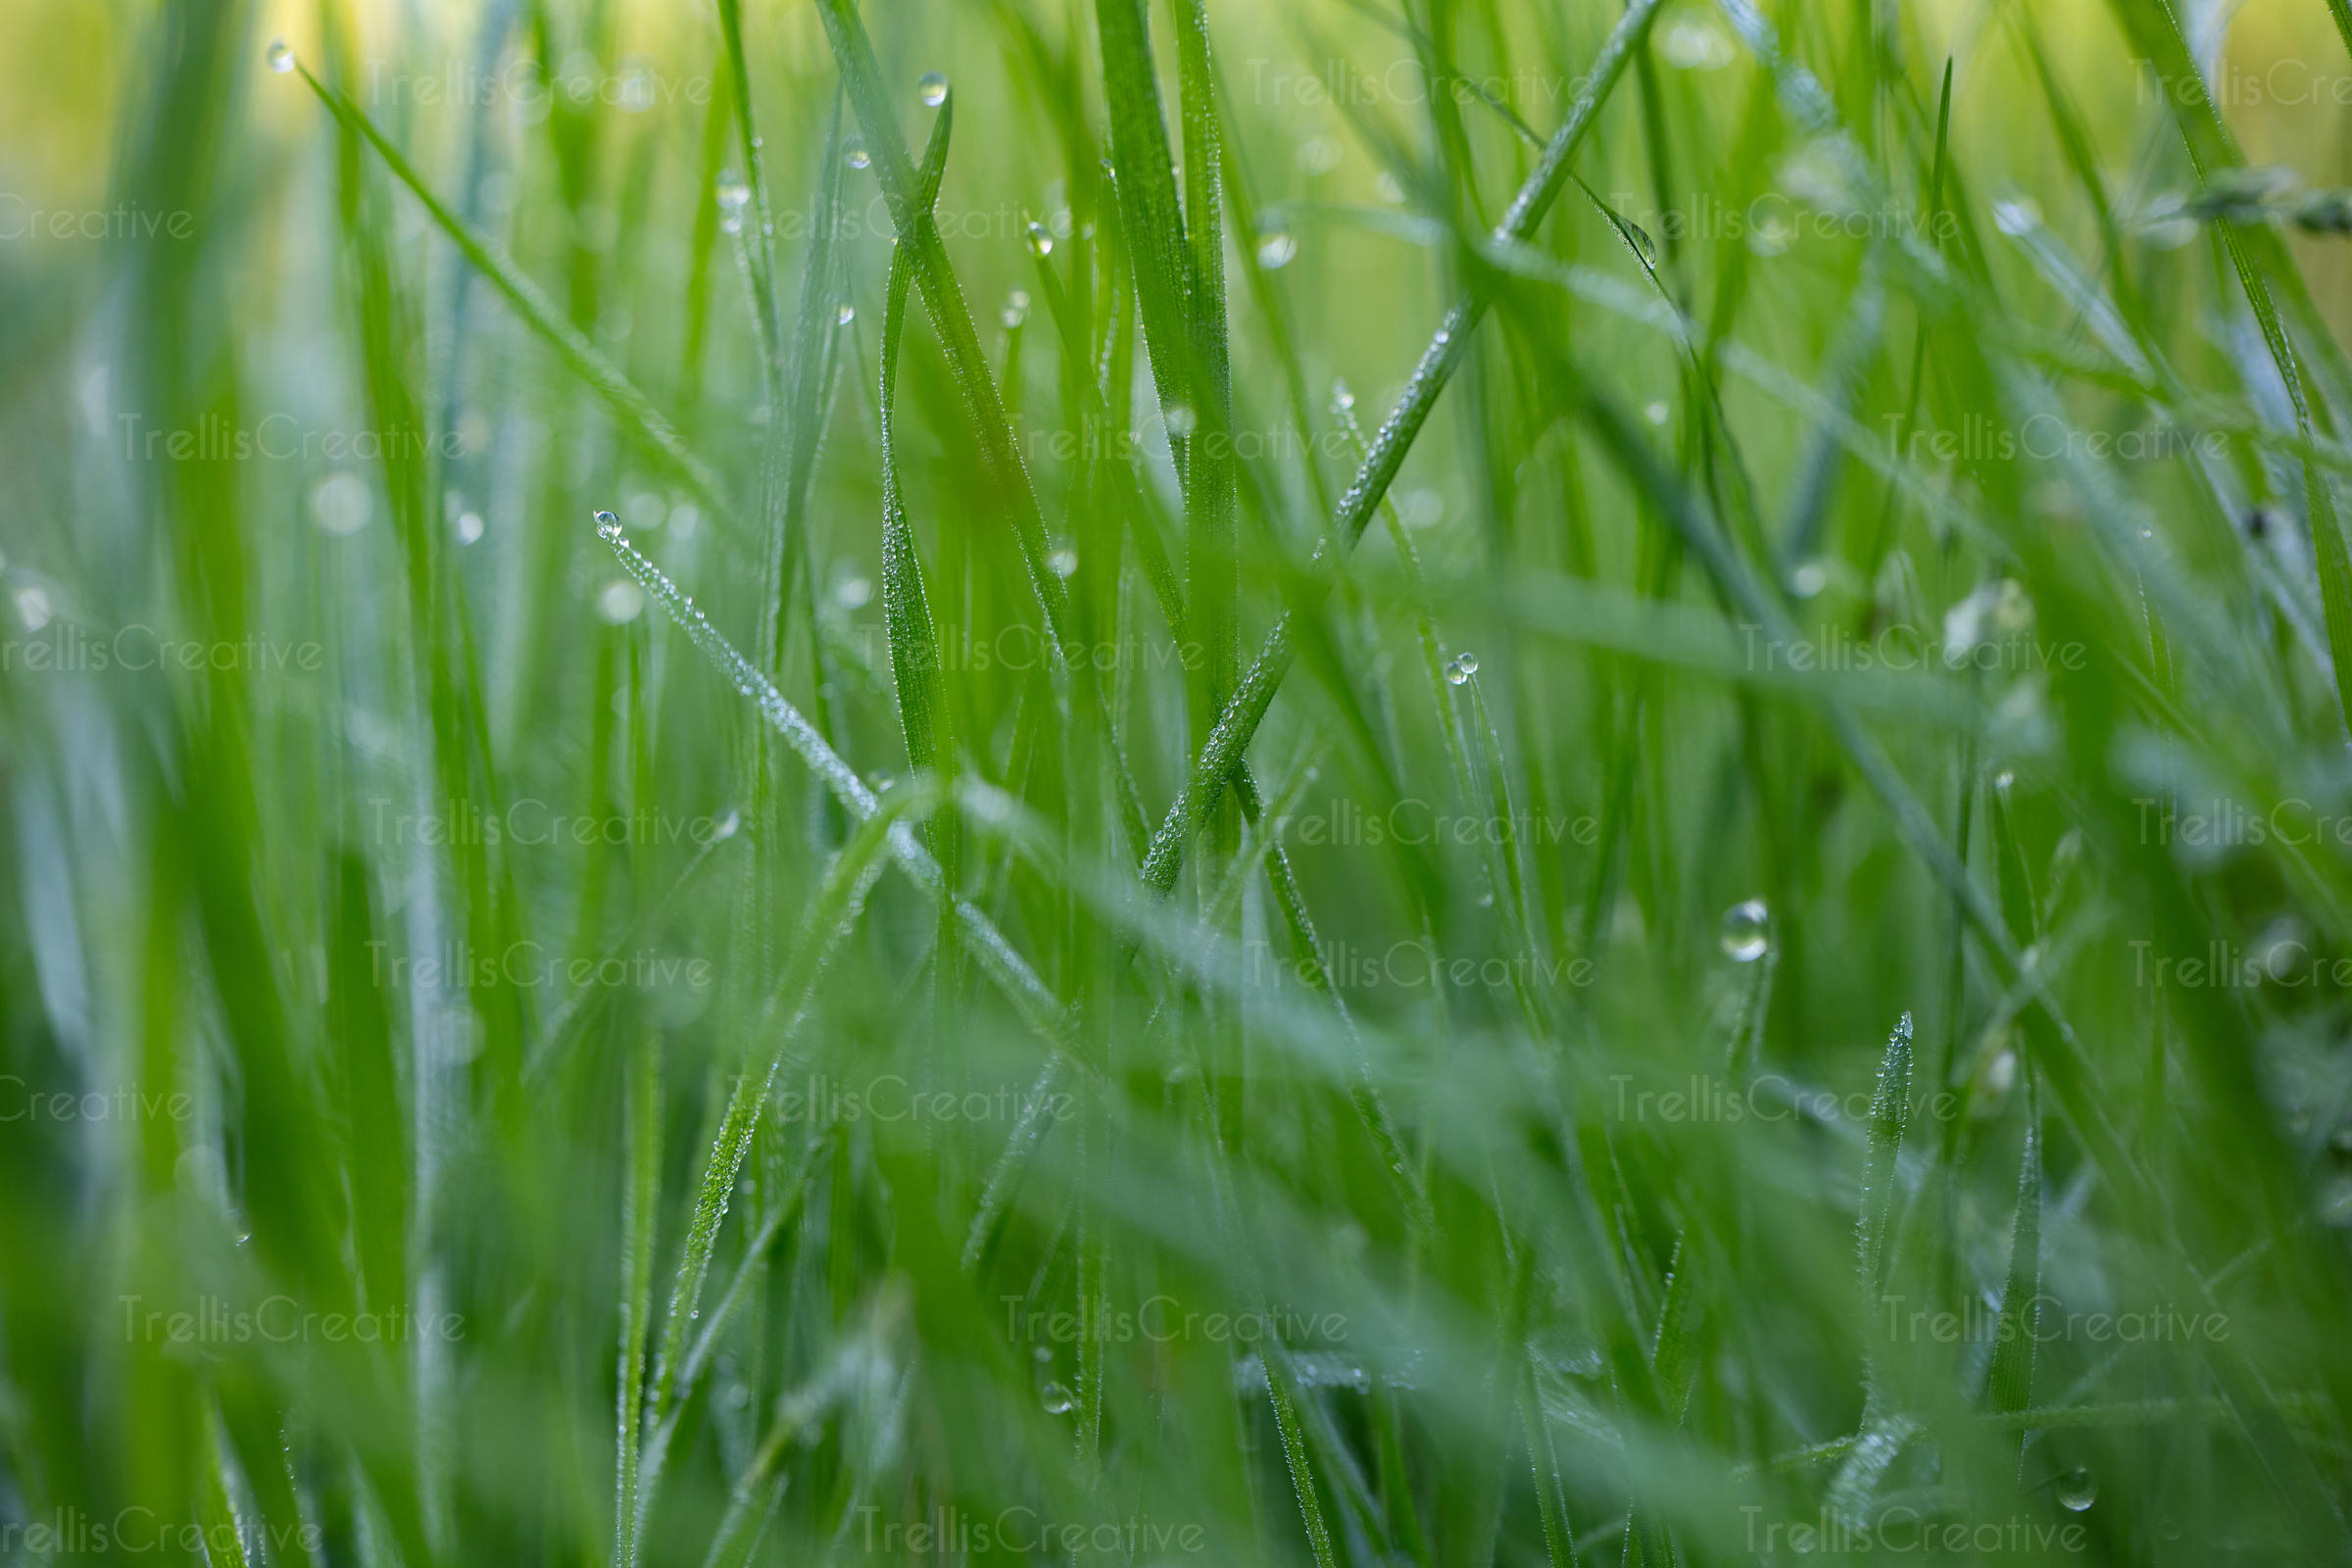 Close-up of green grass blades